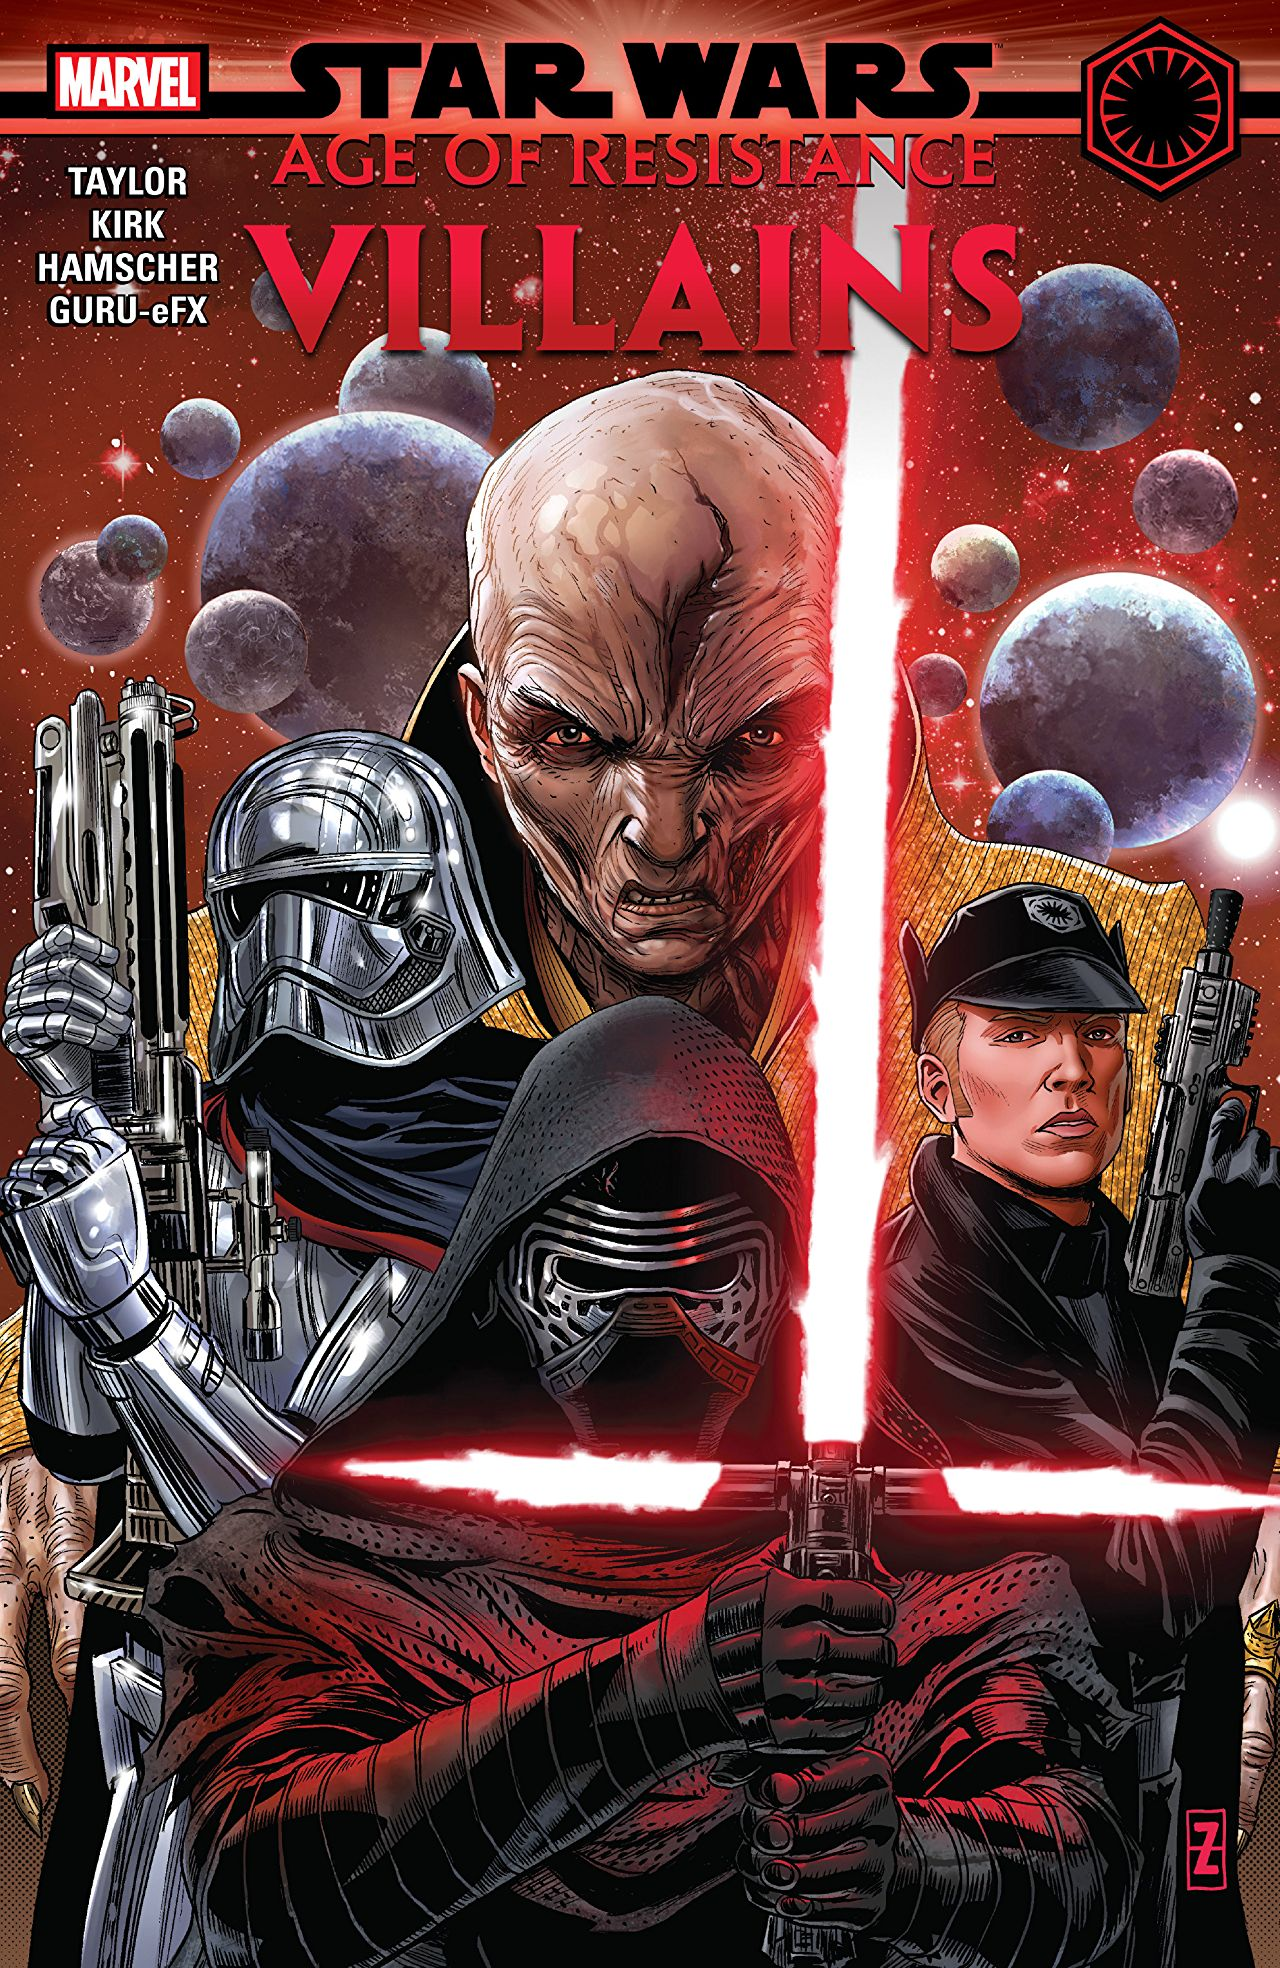 Age of Resistance: Villains (03.12.2019)